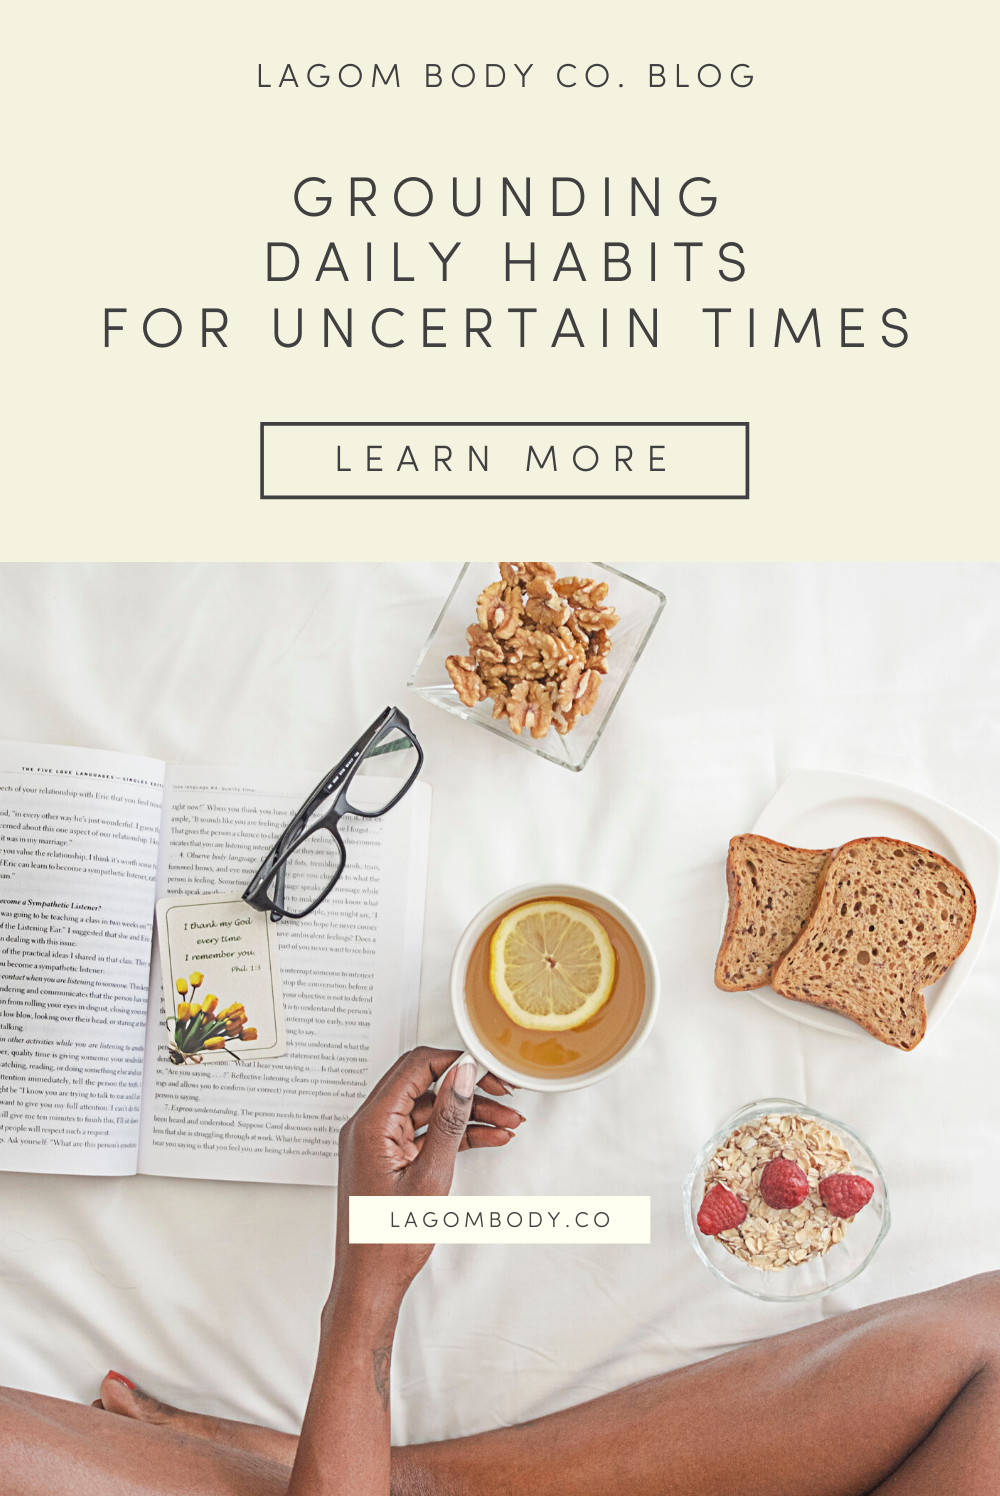 Grounding Daily Habits For Uncertain Times Pinterest Promo Image